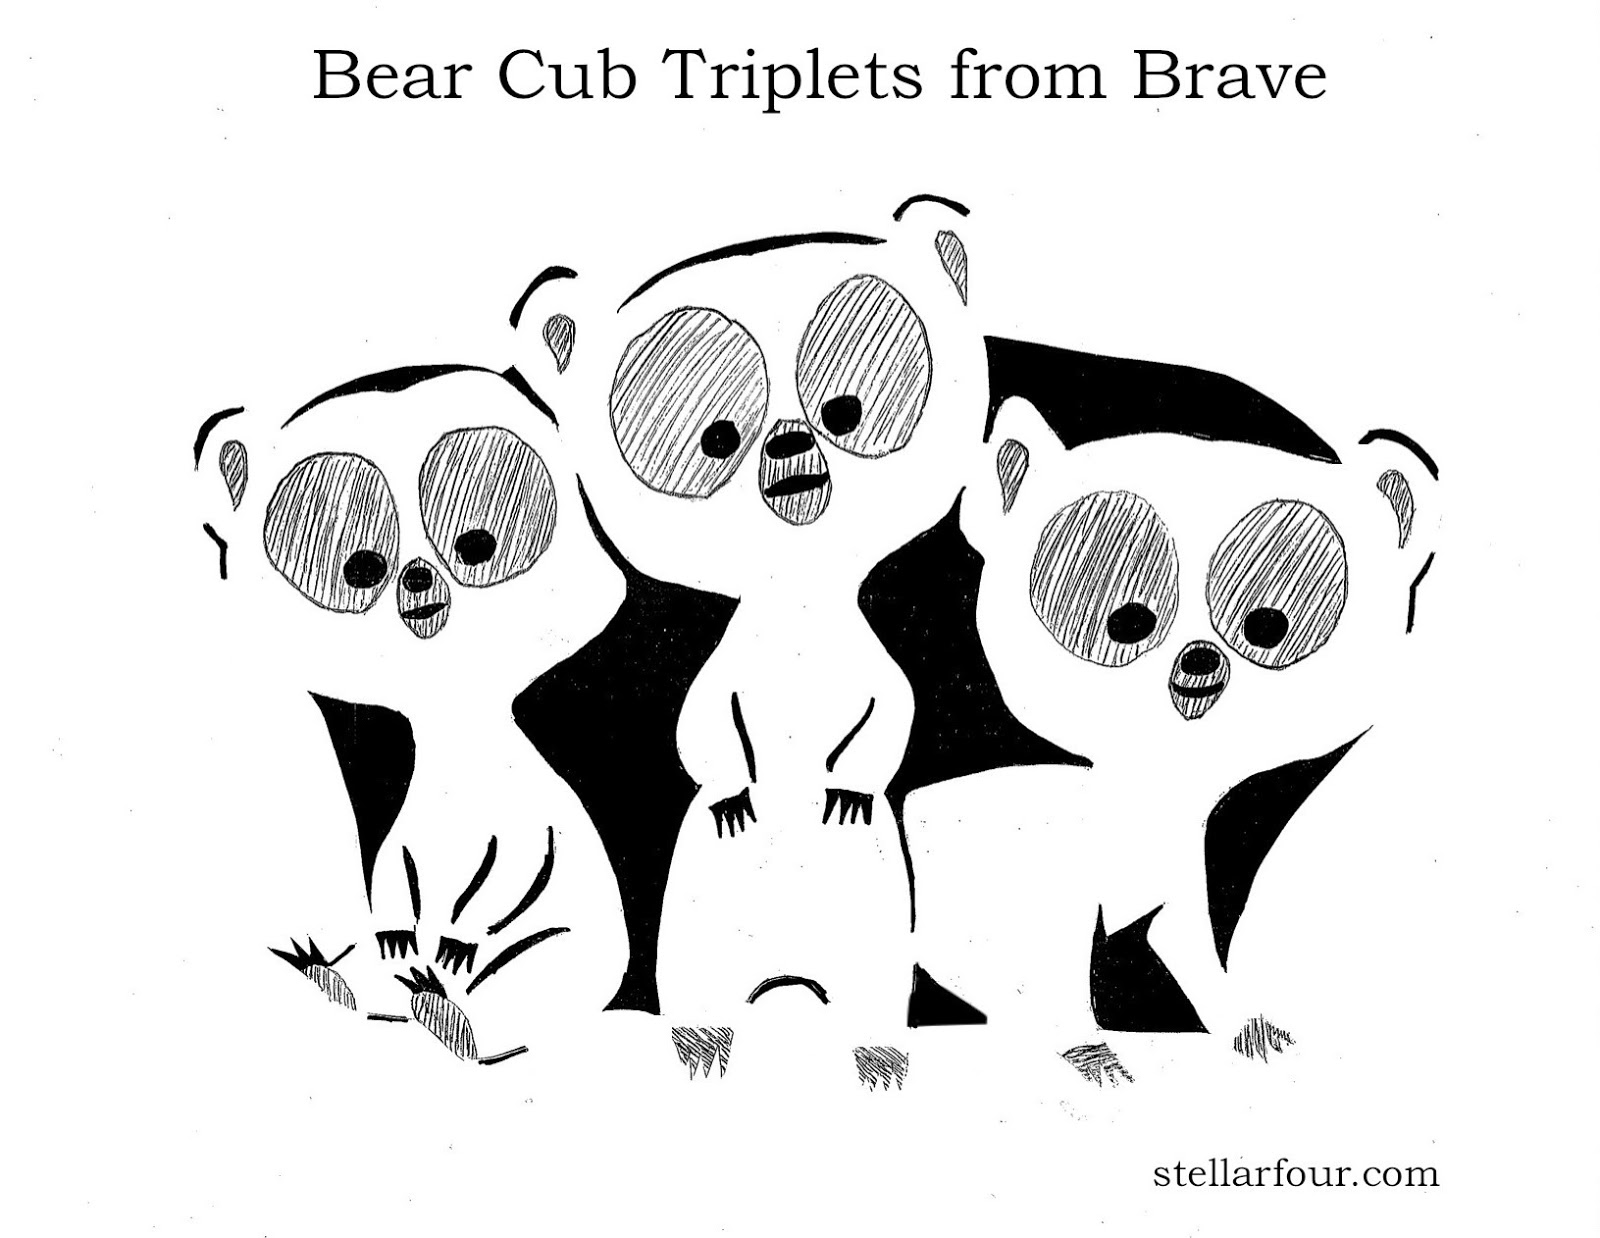 Stellar Four Pumpkin Carving Pattern The Bear Cub Triplets From Brave